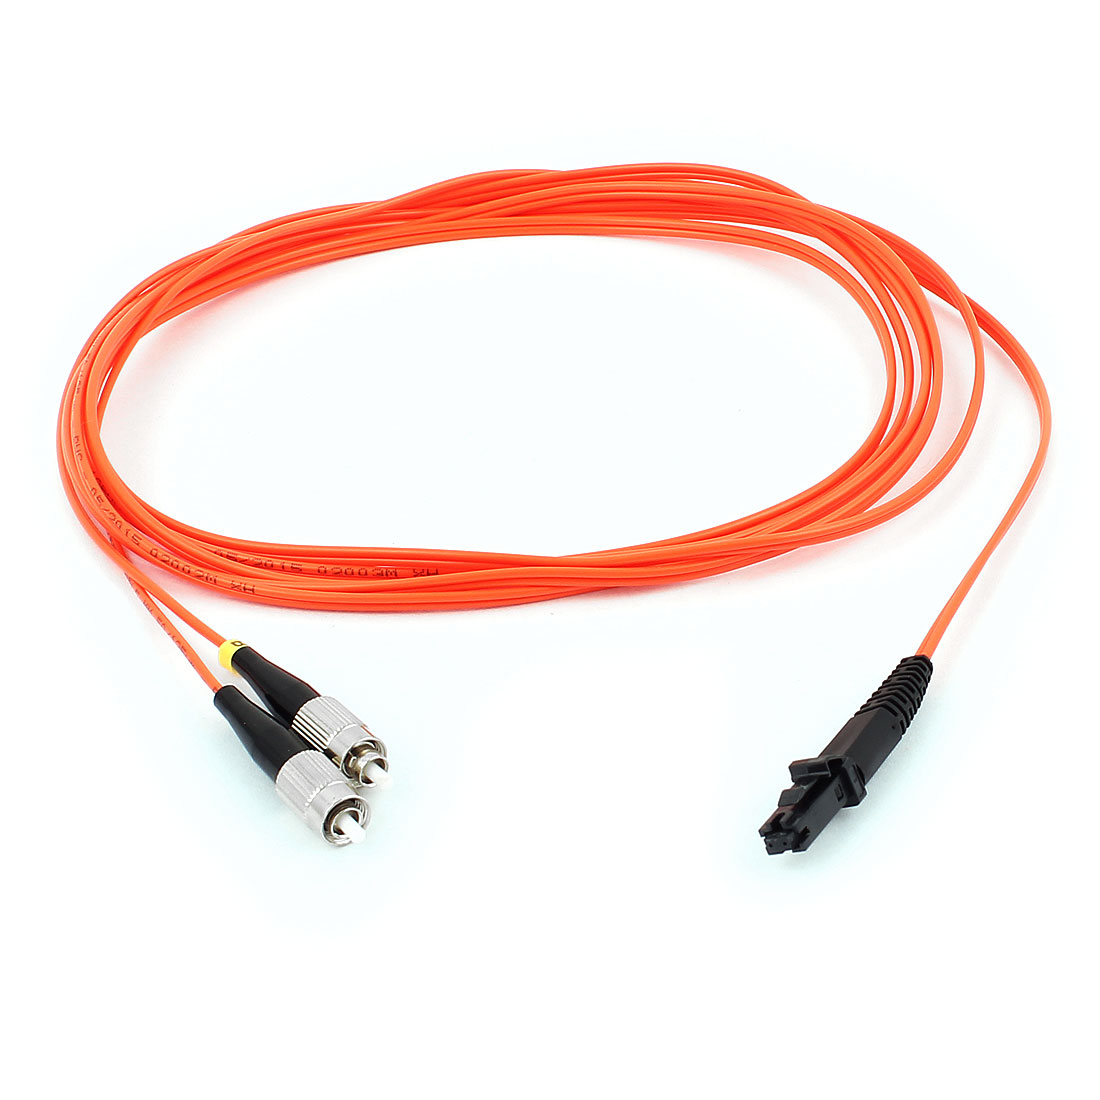 3.0M 50/125 Jumper Cable Duplex Multimode MTRJ-FC Fiber Optic Cord